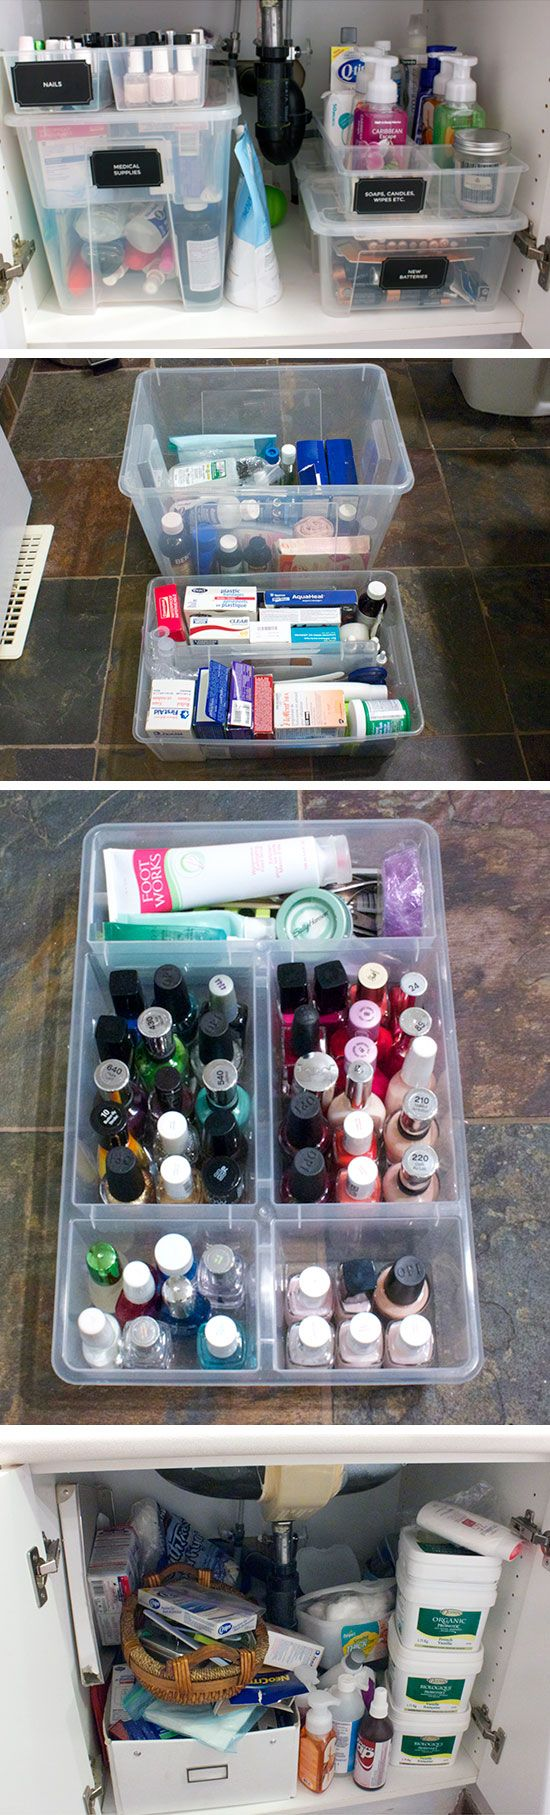 Organize cabinet with plastic containers click pic for - Plastic bathroom storage containers ...